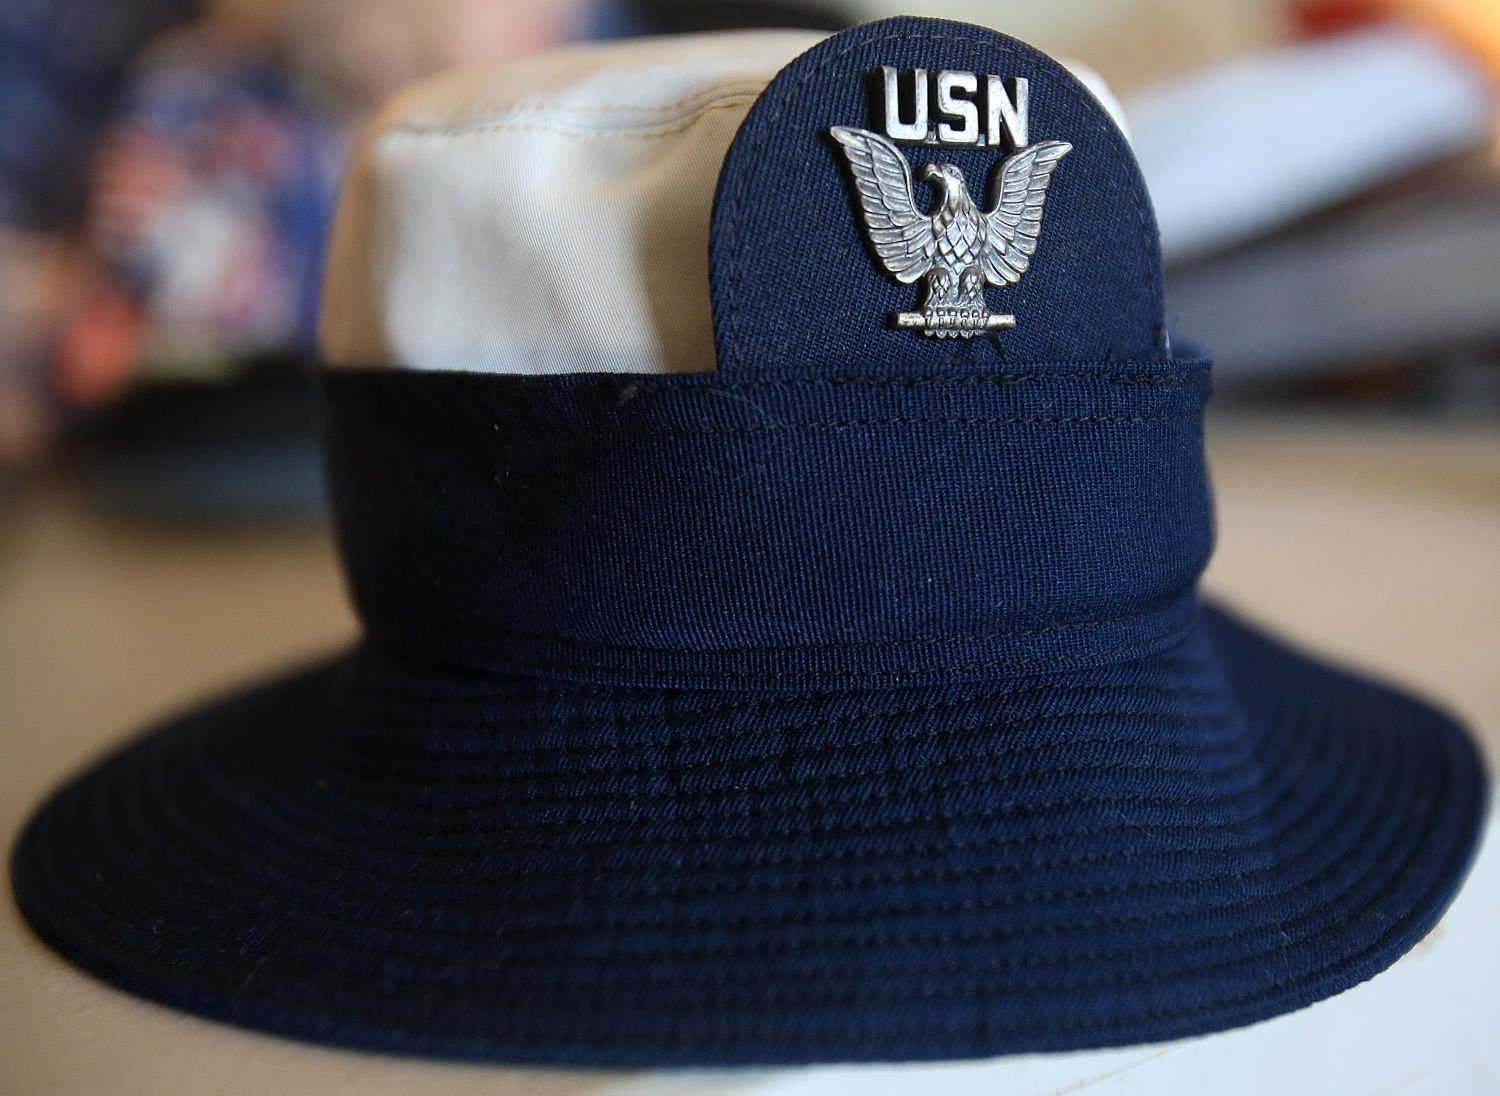 34aafa7cb75 Helen Anderson Glass  hat that she wore when she served in United States  Navy. Glass enlisted on her 20th birthday on March 8